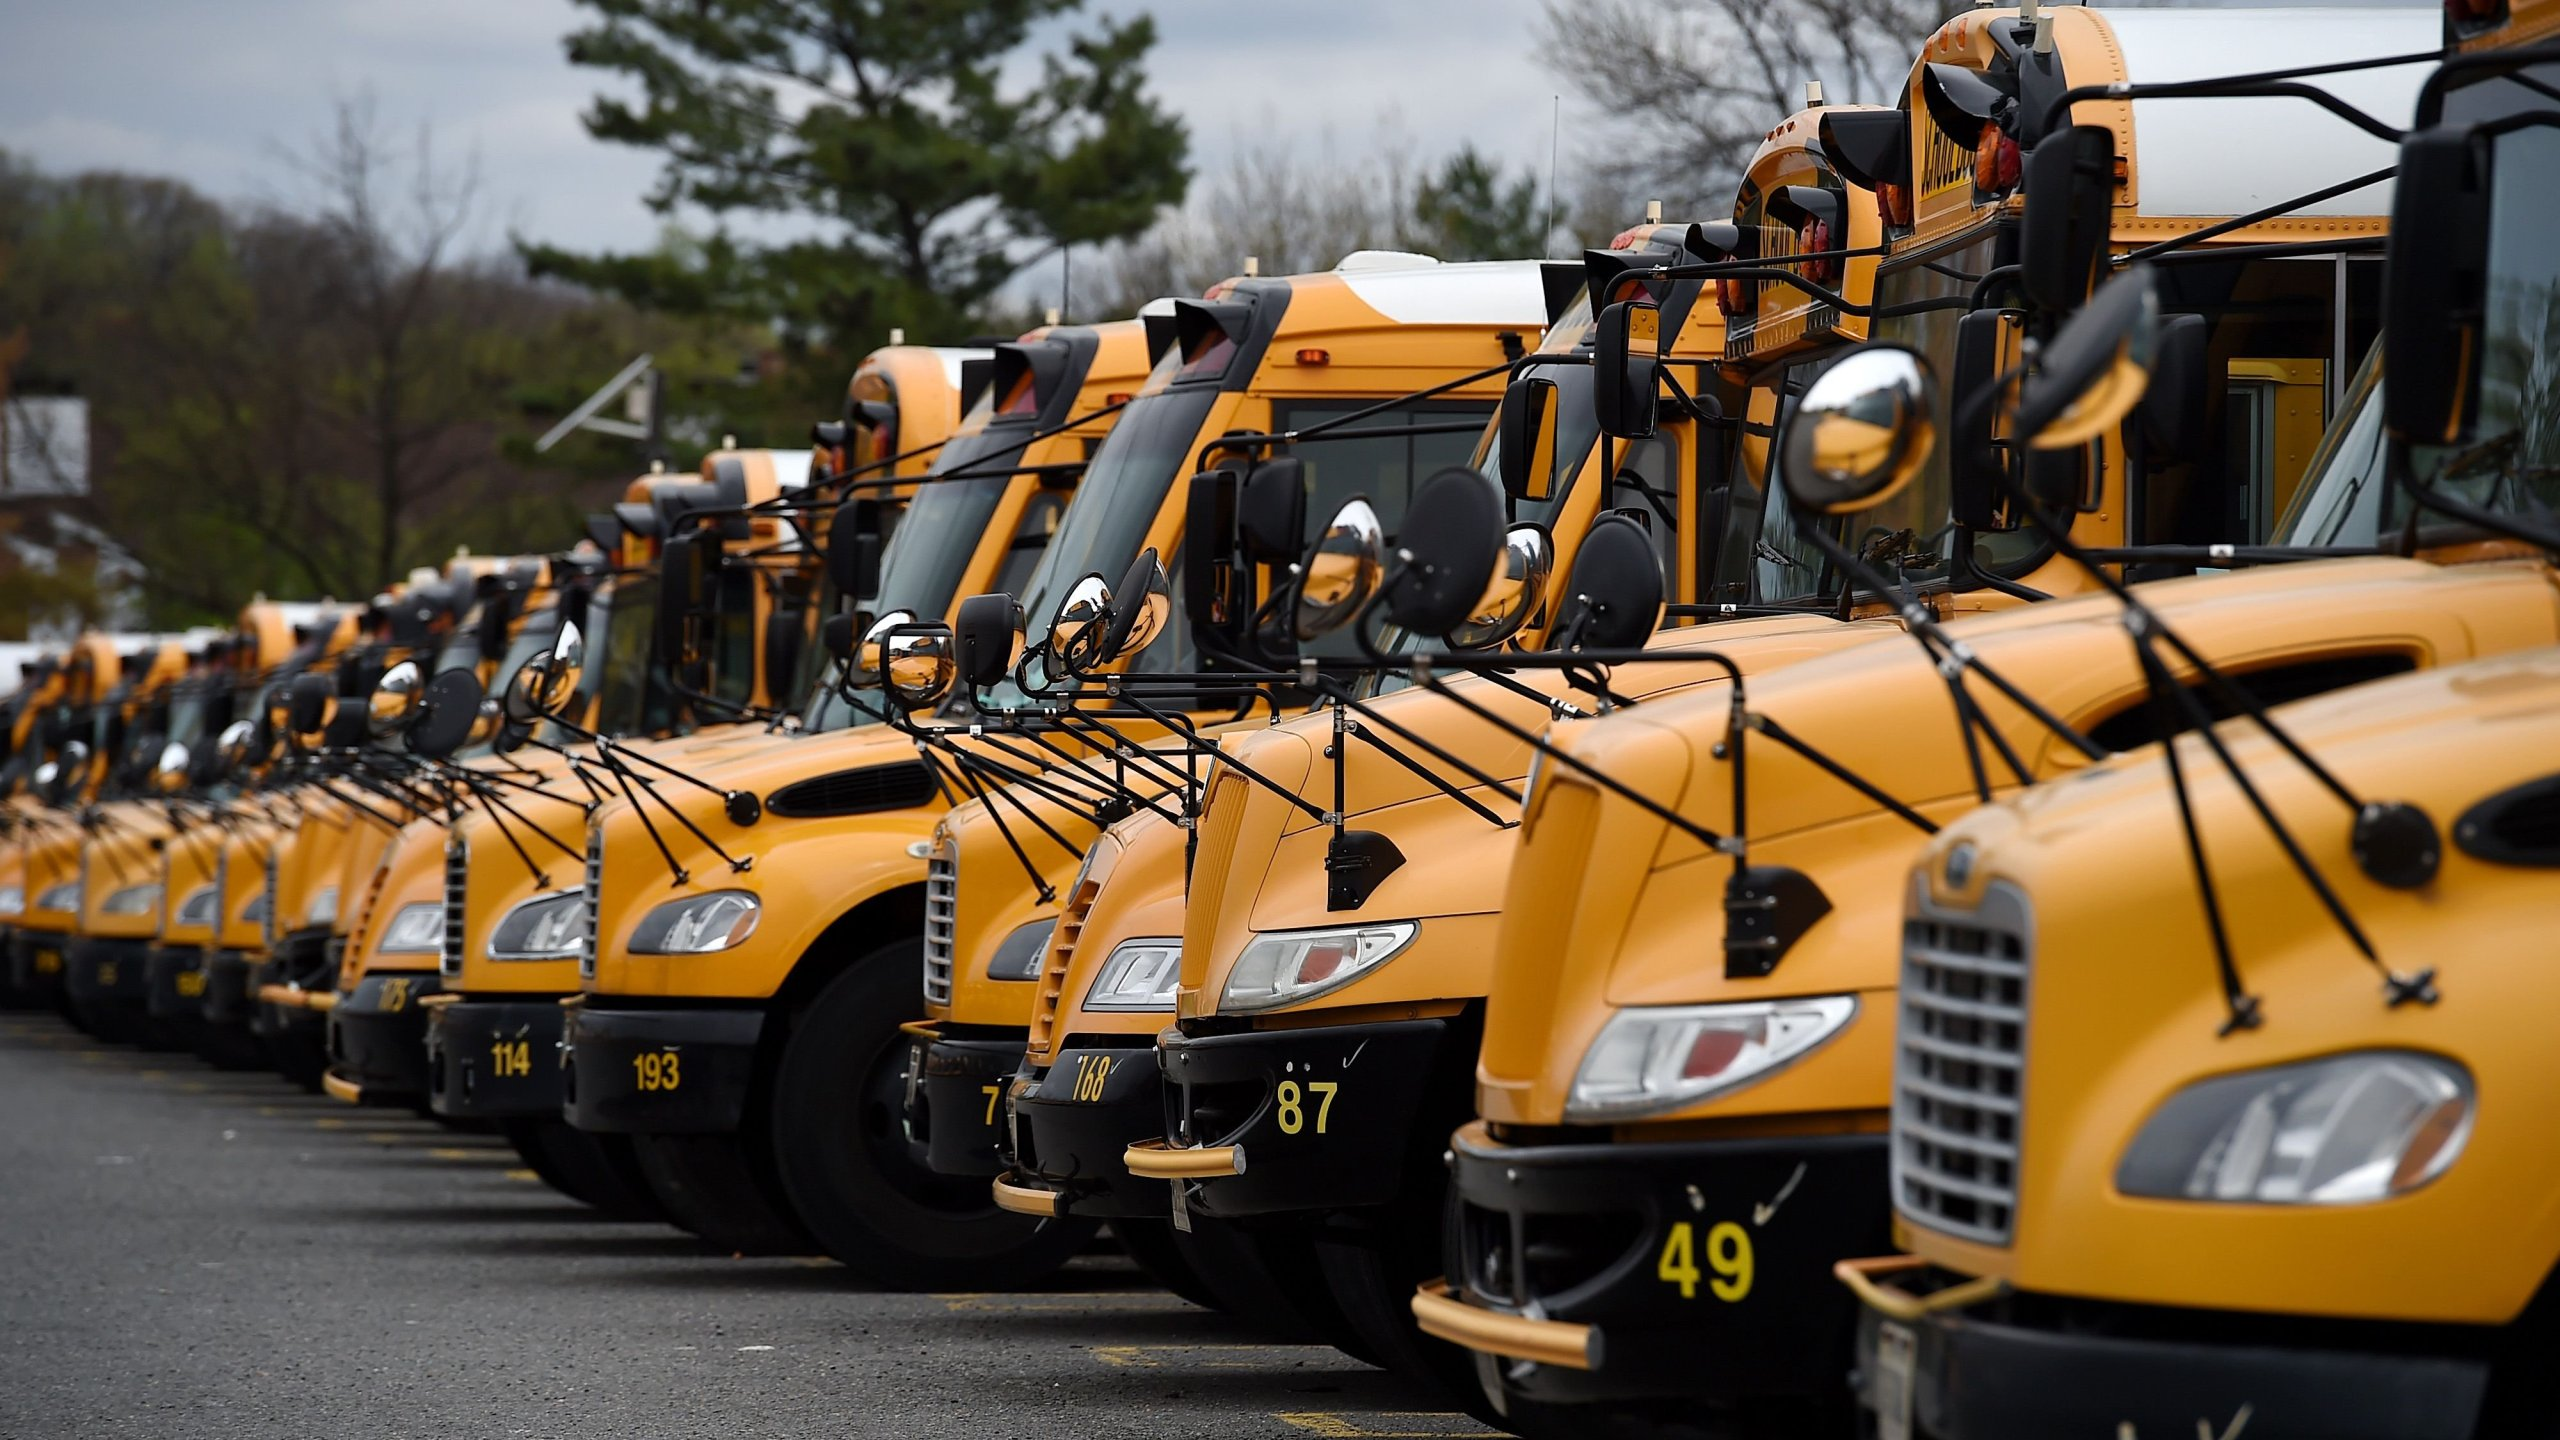 About 100 school buses are parked at the Arlington County Bus Depot, in response to the novel coronavirus, COVID-19 outbreak on March 31, 2020 in Arlington, Virginia. (Olivier Douliery/AFP via Getty Images)